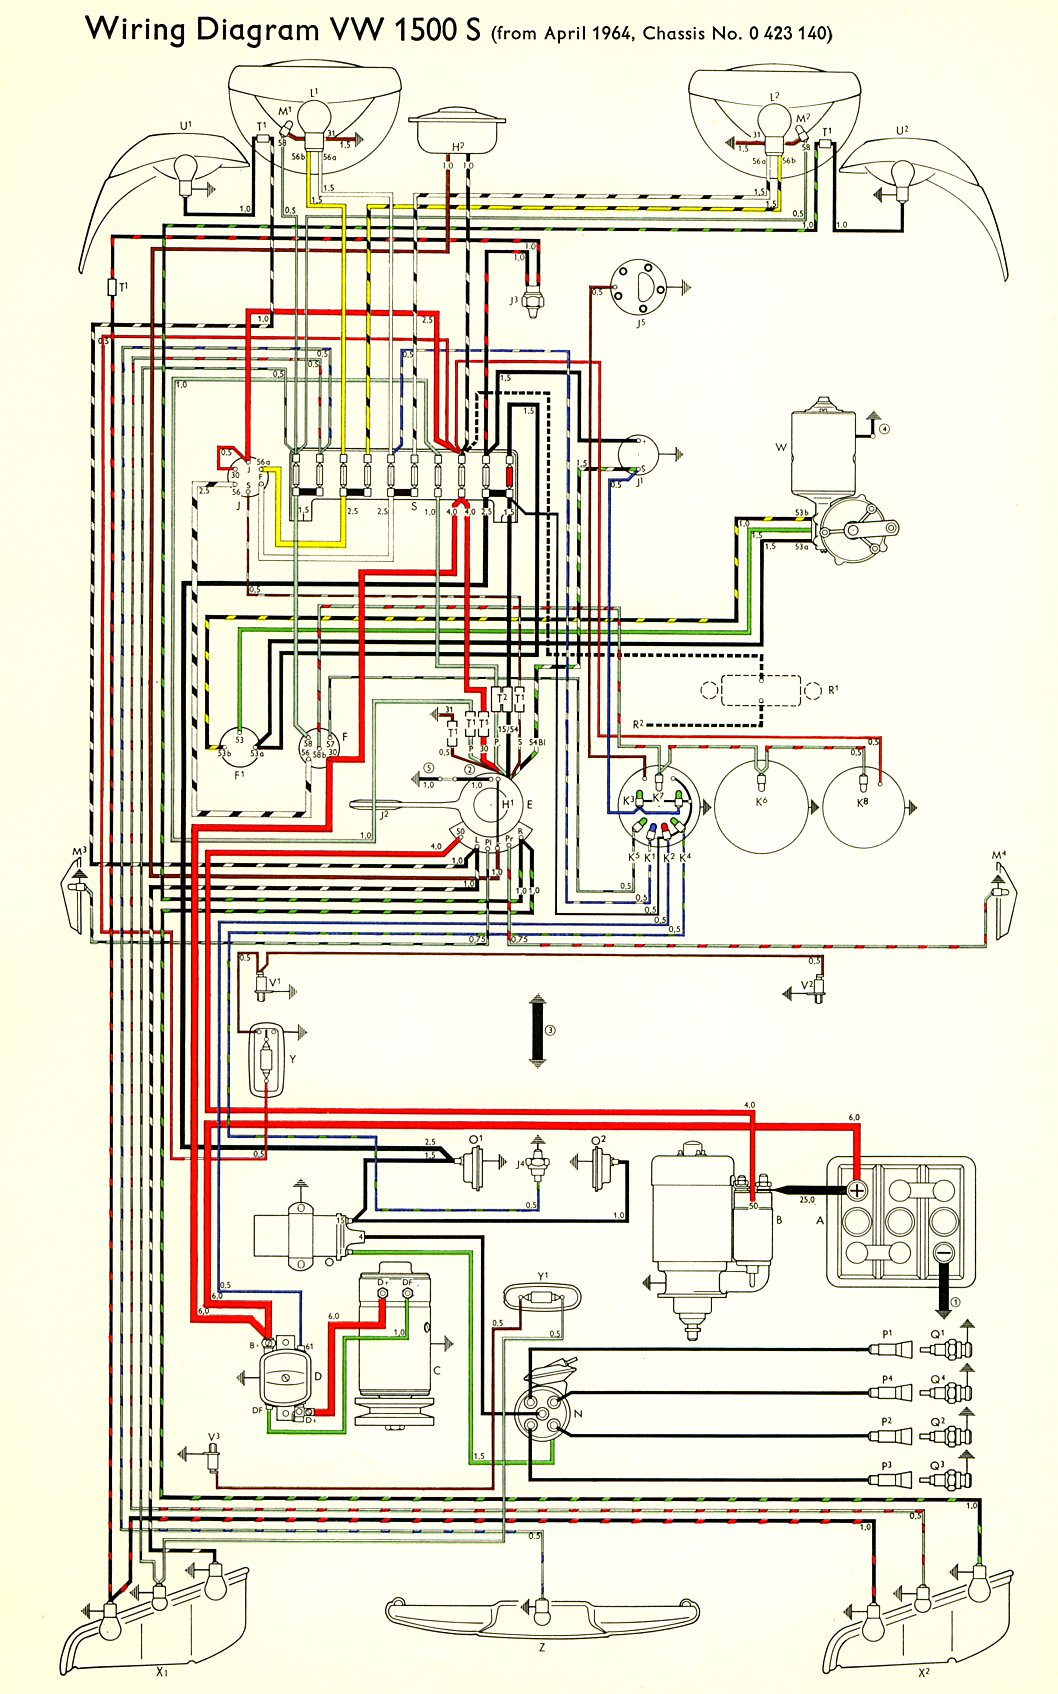 type3_1500S_6465 thesamba com type 3 wiring diagrams Basic Electrical Wiring Diagrams at bayanpartner.co